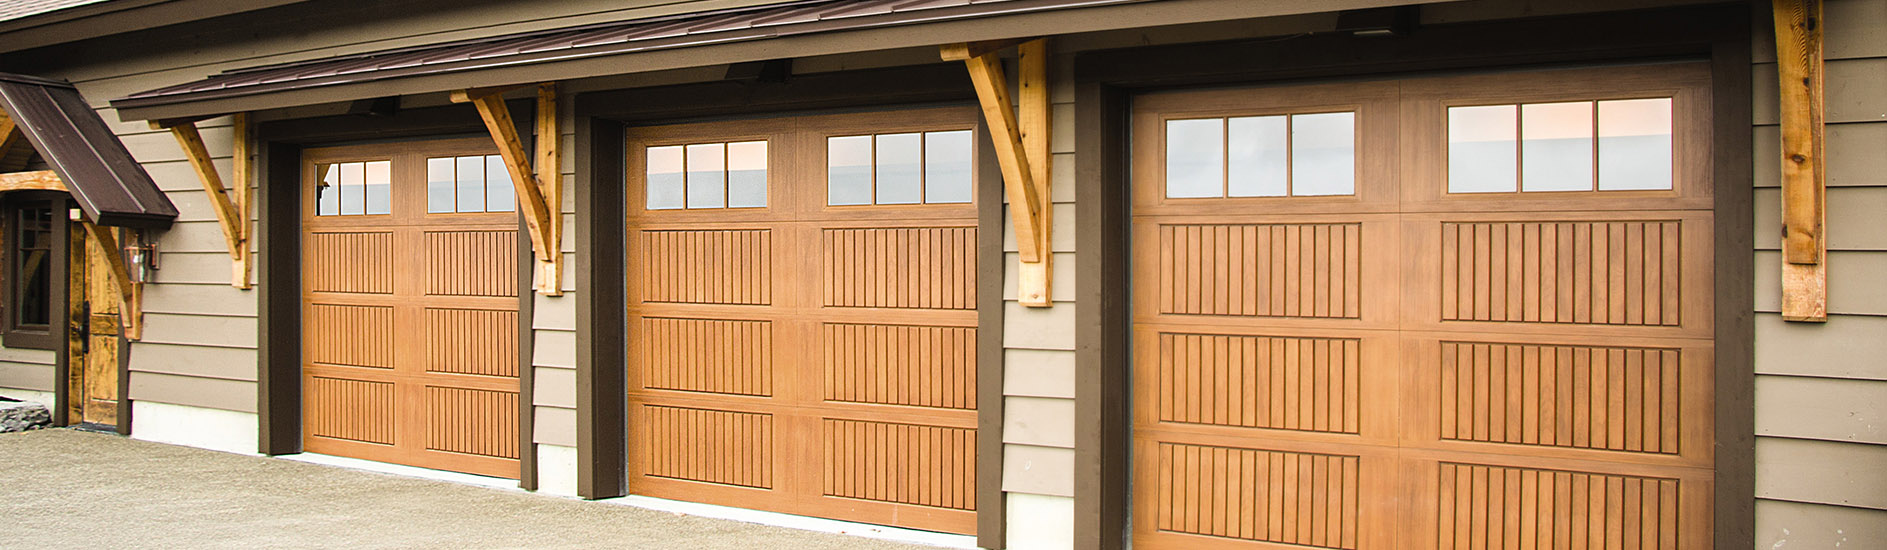 Mc overhead door residential commercial garage doors for Bay area garage doors